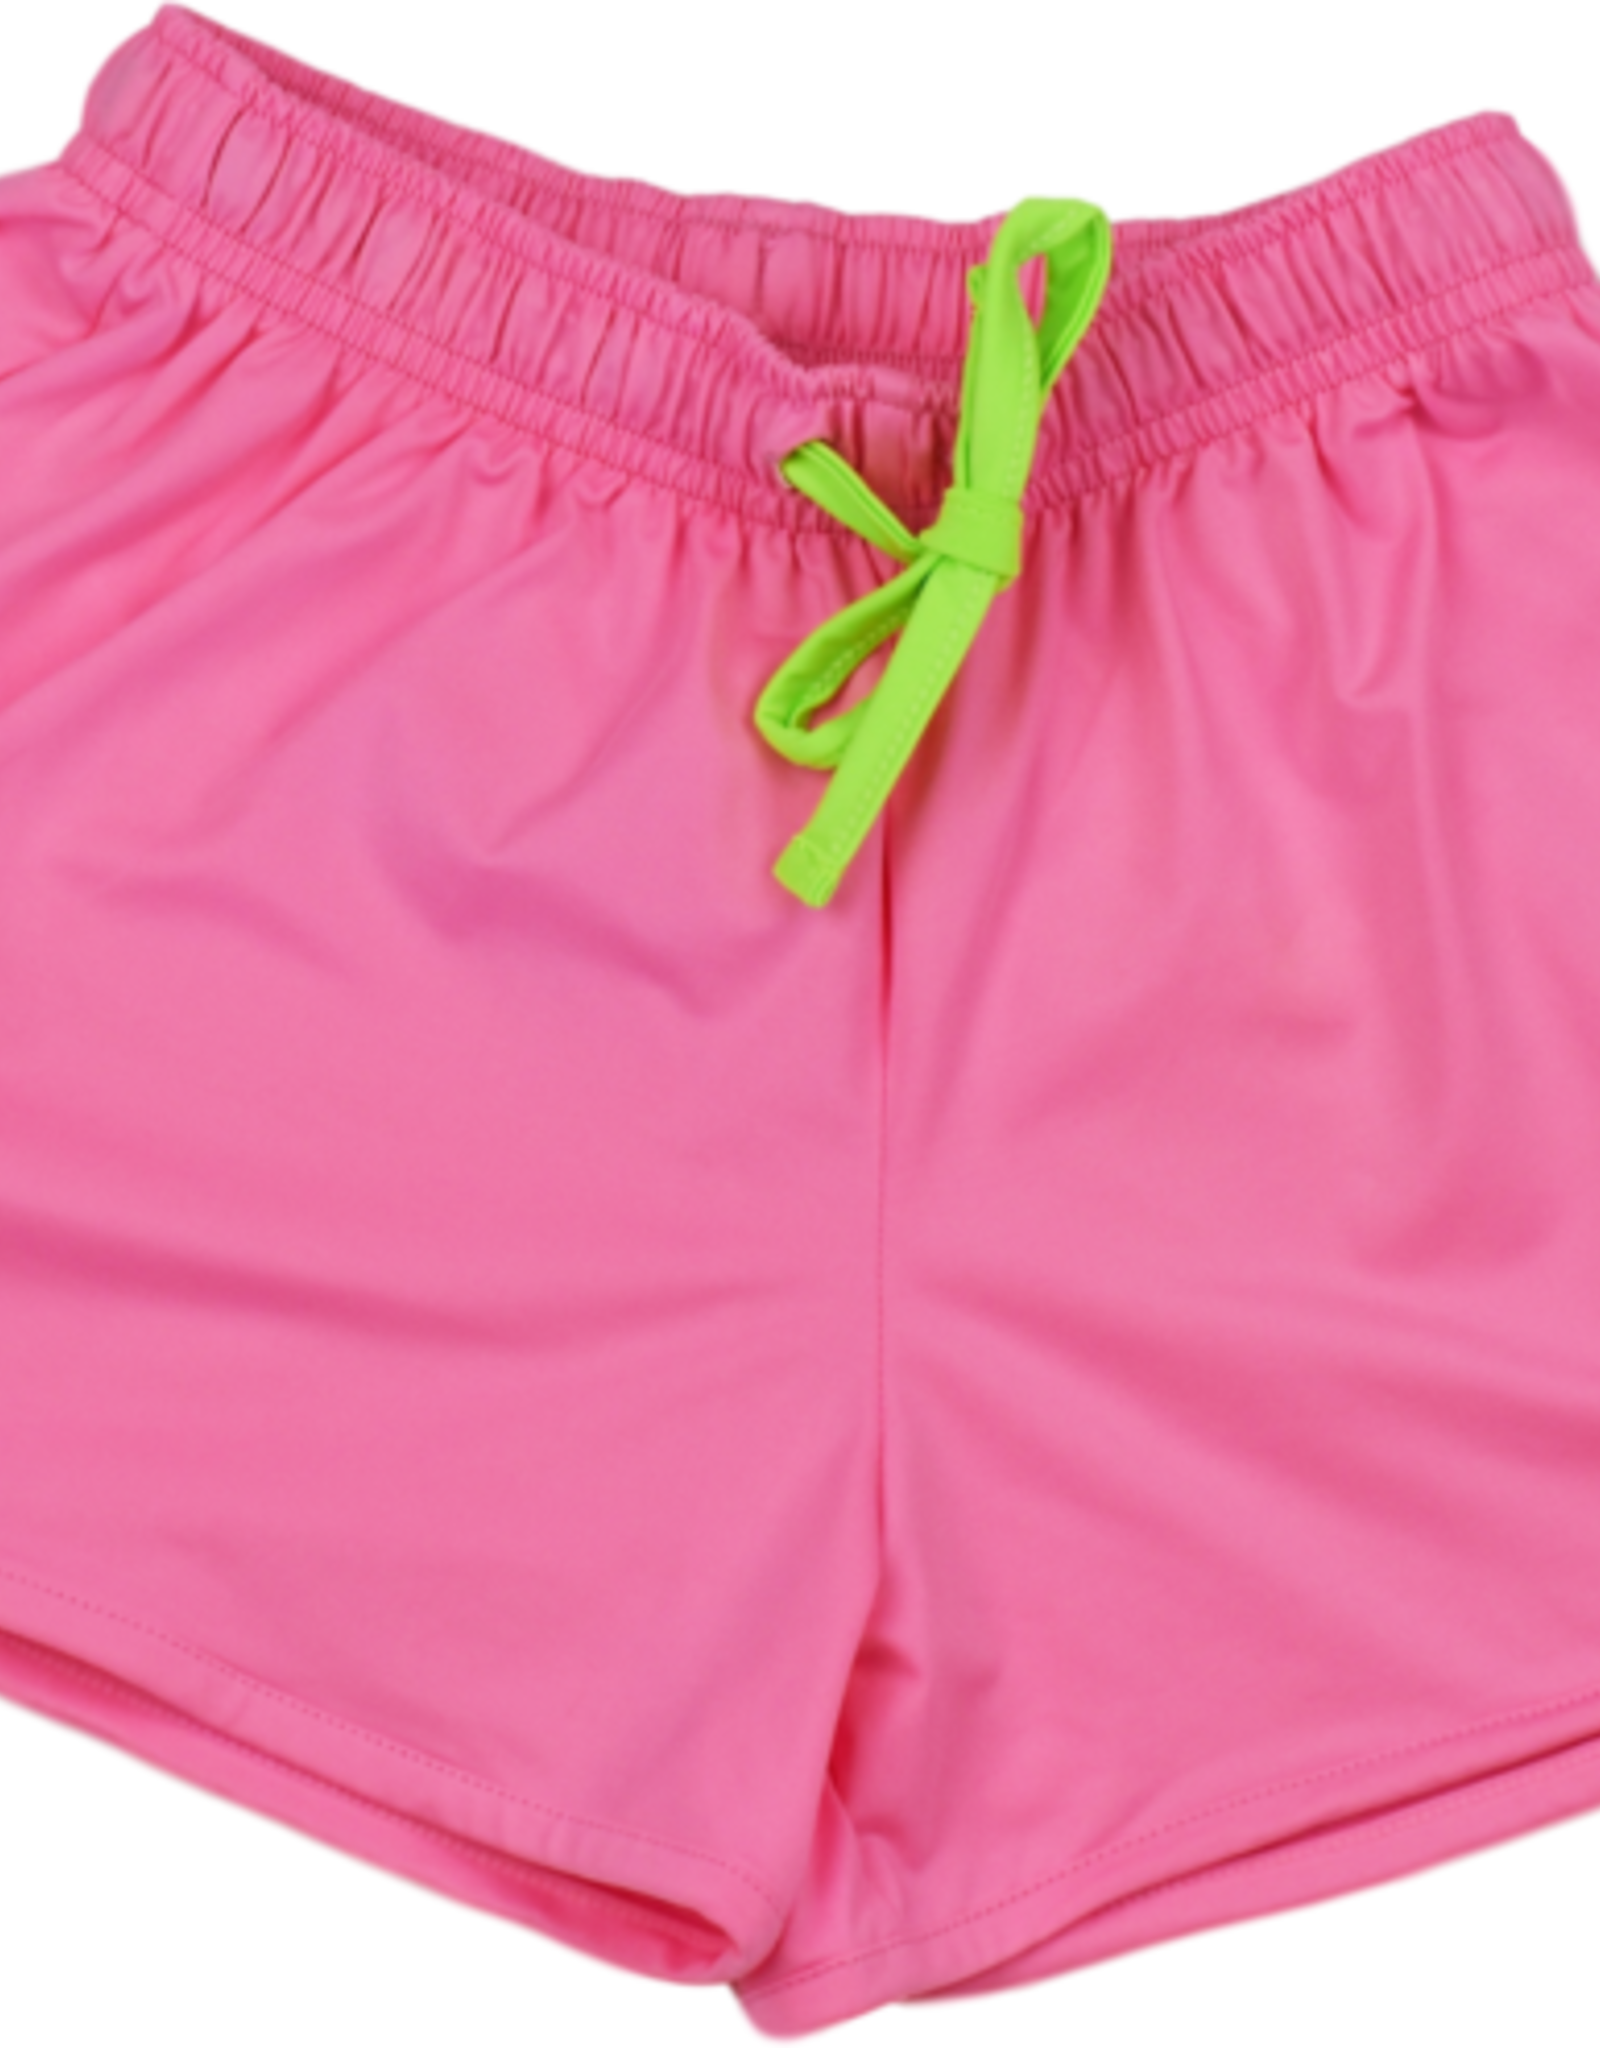 SET Emily Short Pink w/ Lime